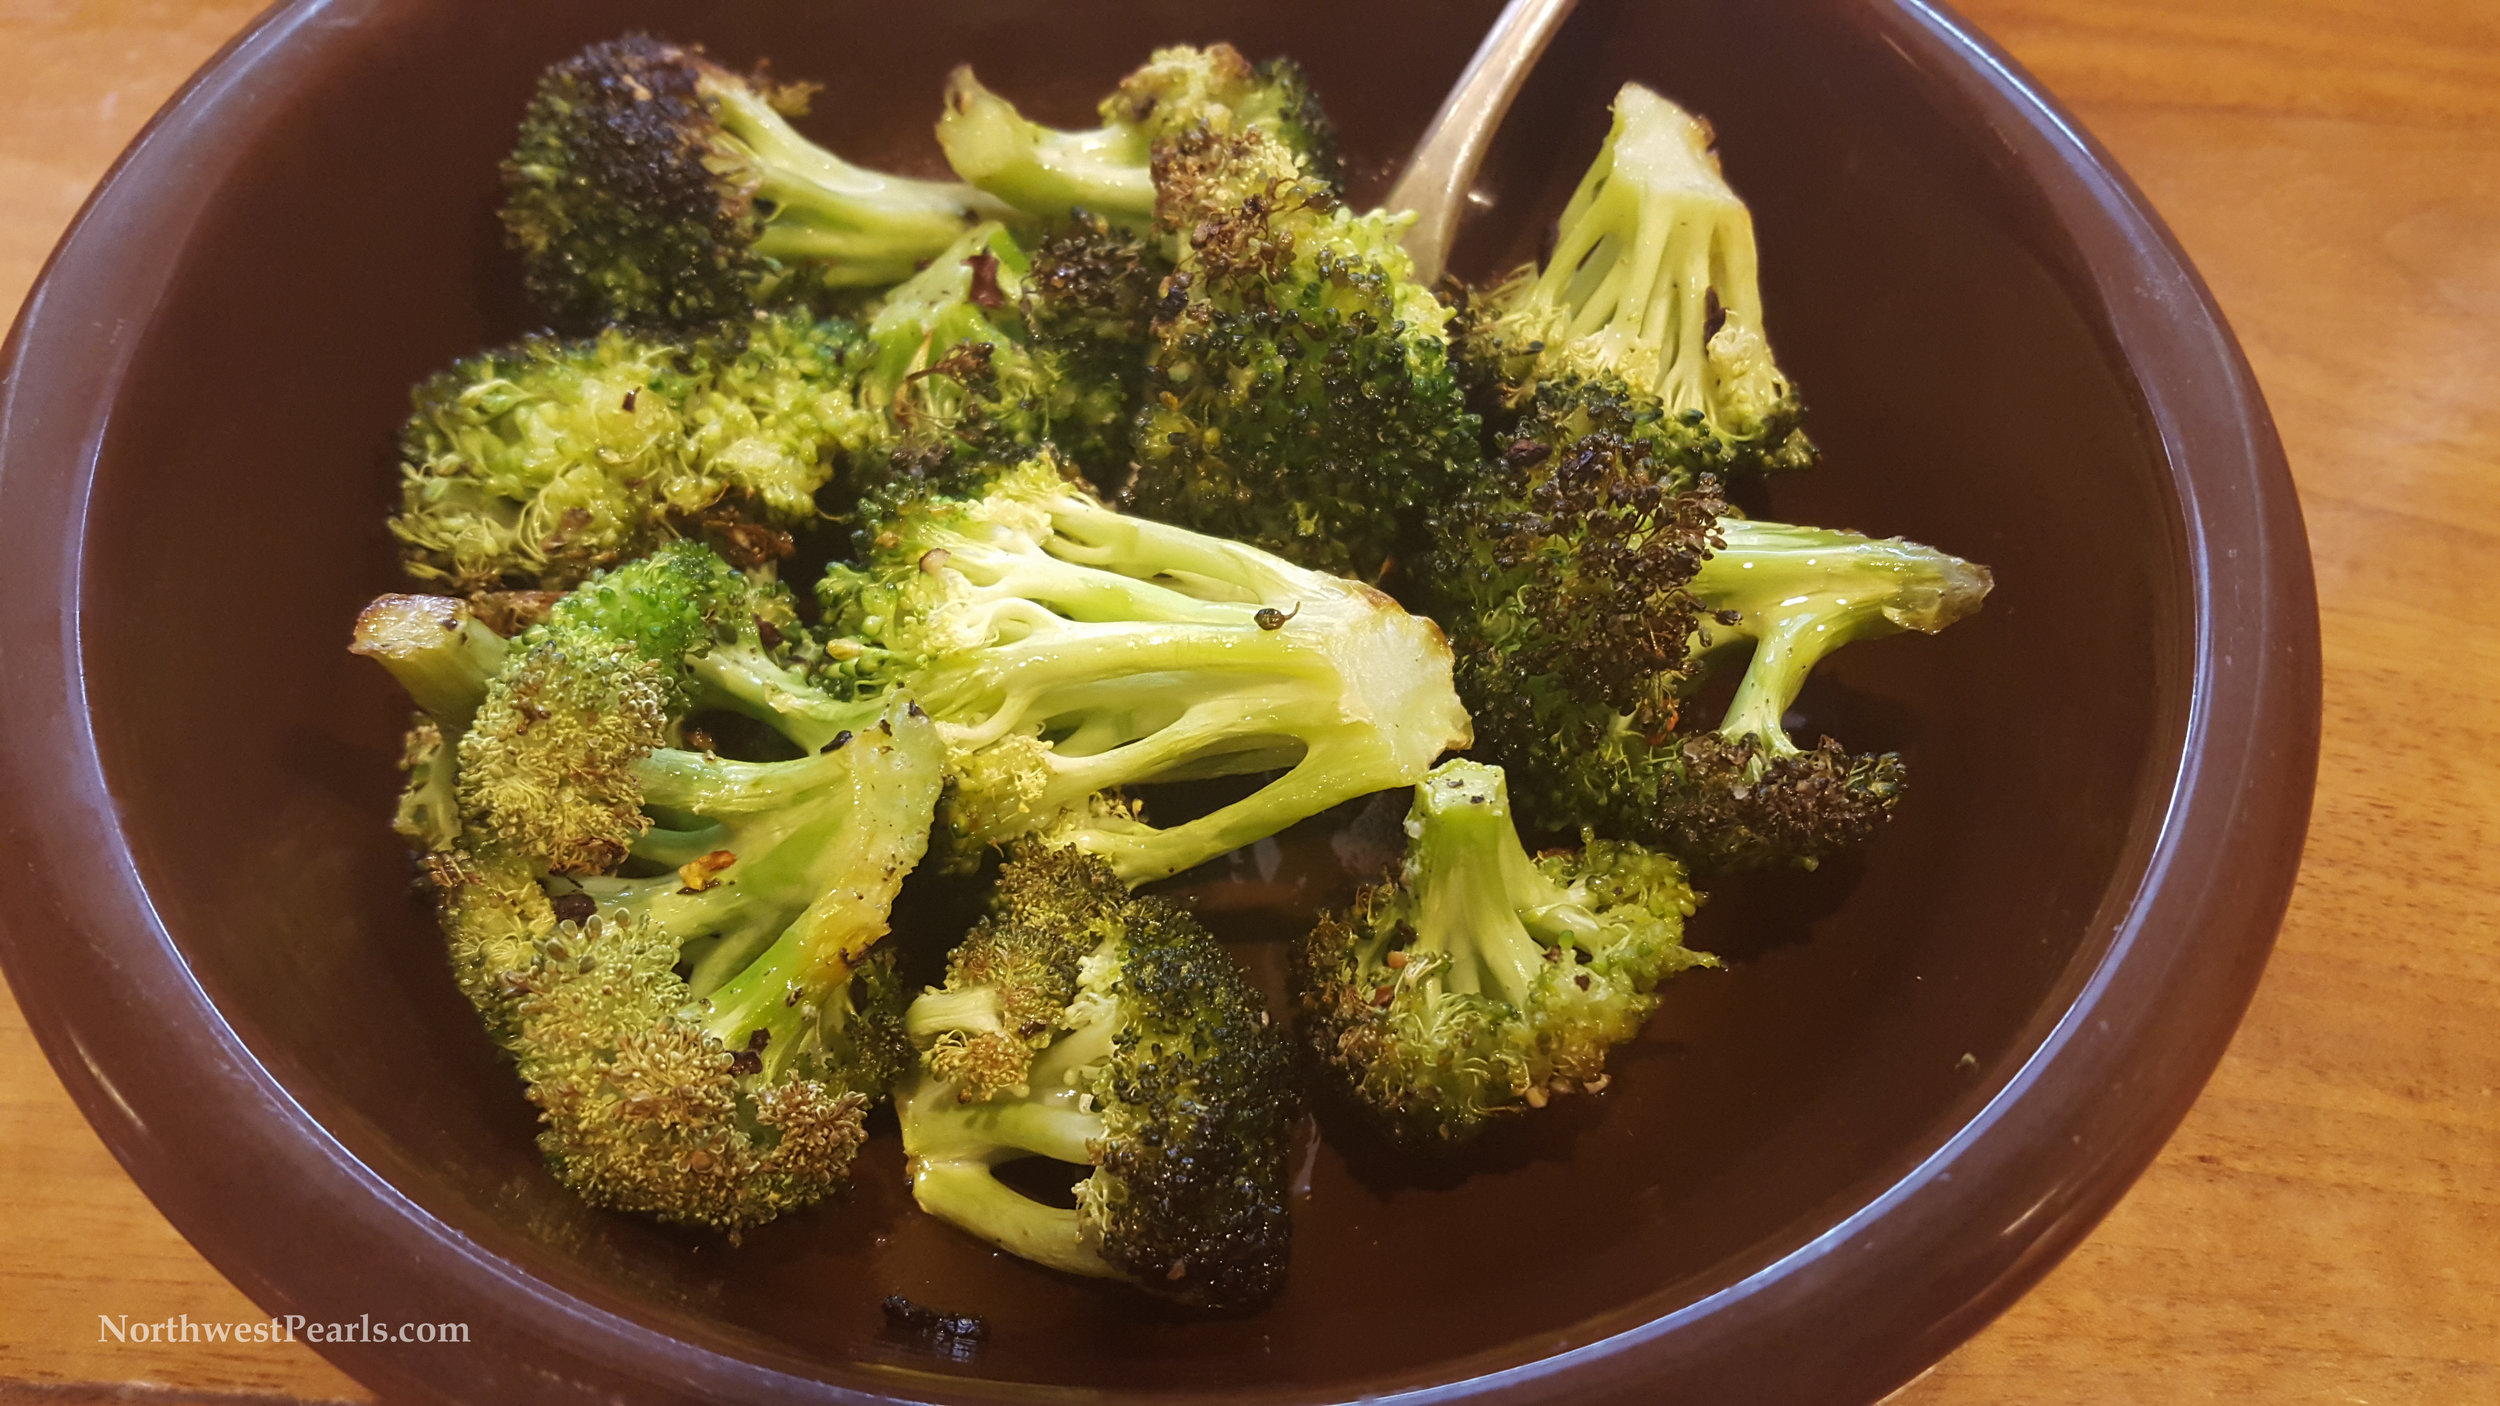 Northwest Pearls: Roasted Broccoli